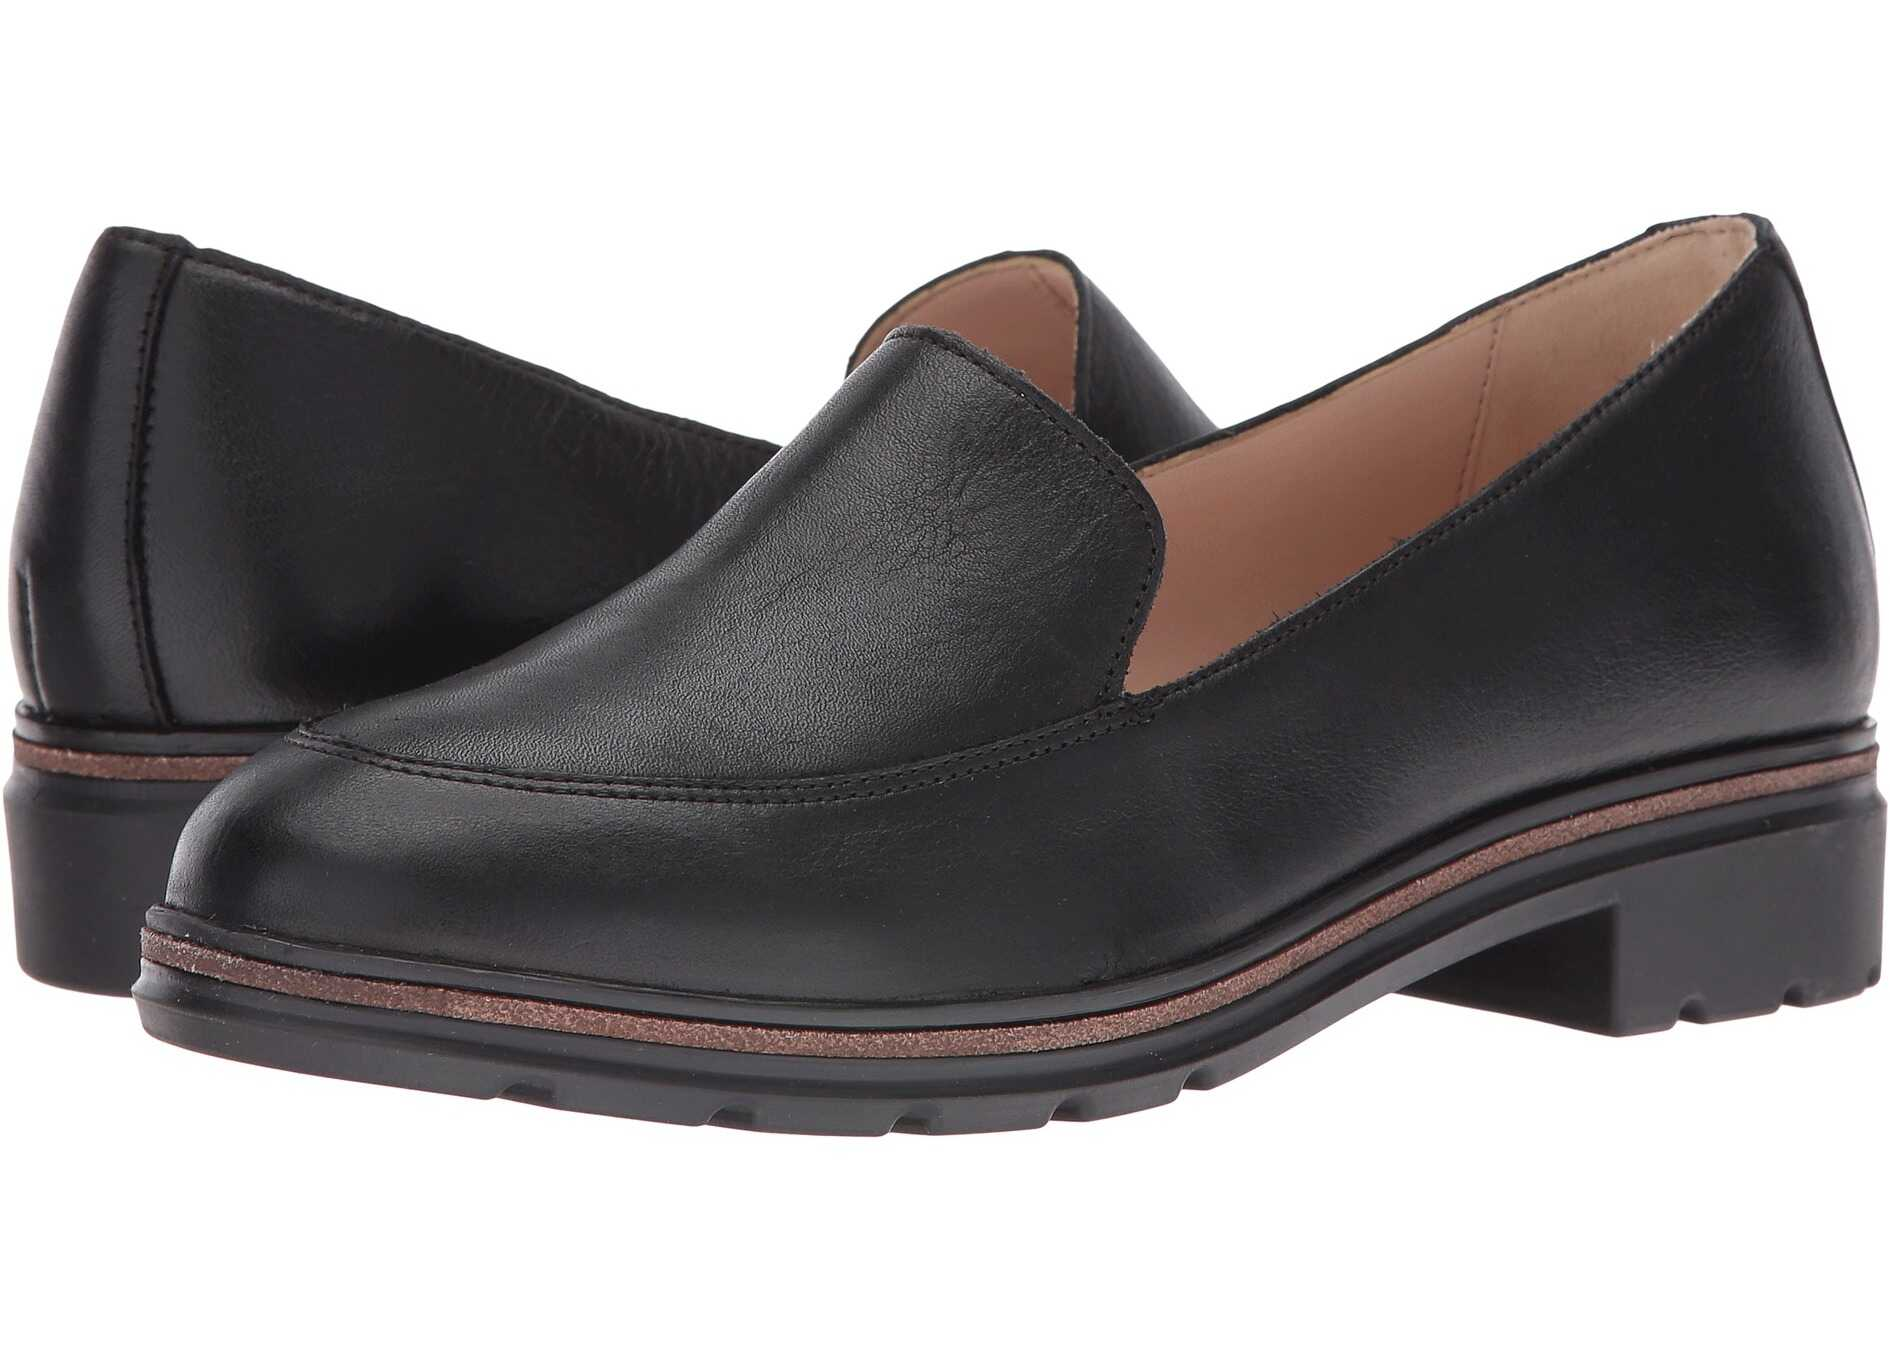 Dr. Scholl's Hollie - Original Collection* Black Leather